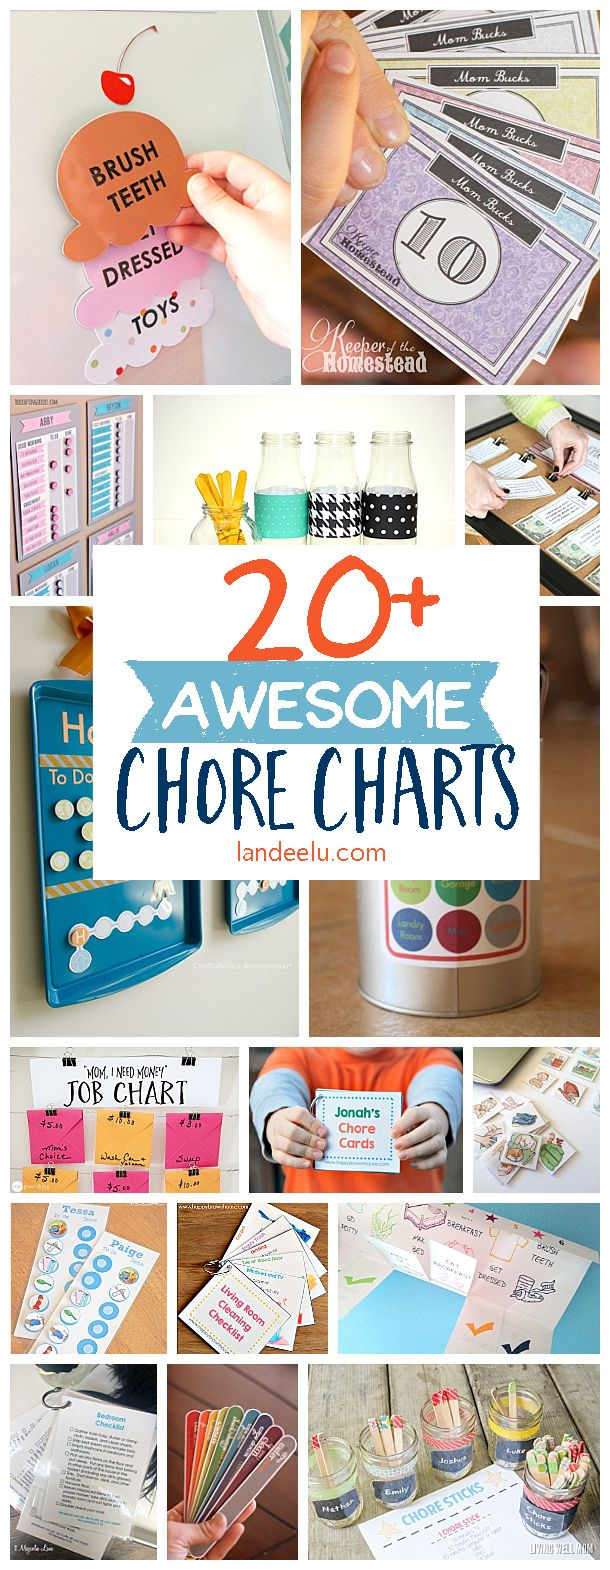 Tons of awesome chore charts to find the one that will work for you and your family!! Tons of FREE Printables and DIY Tutorials Galore!